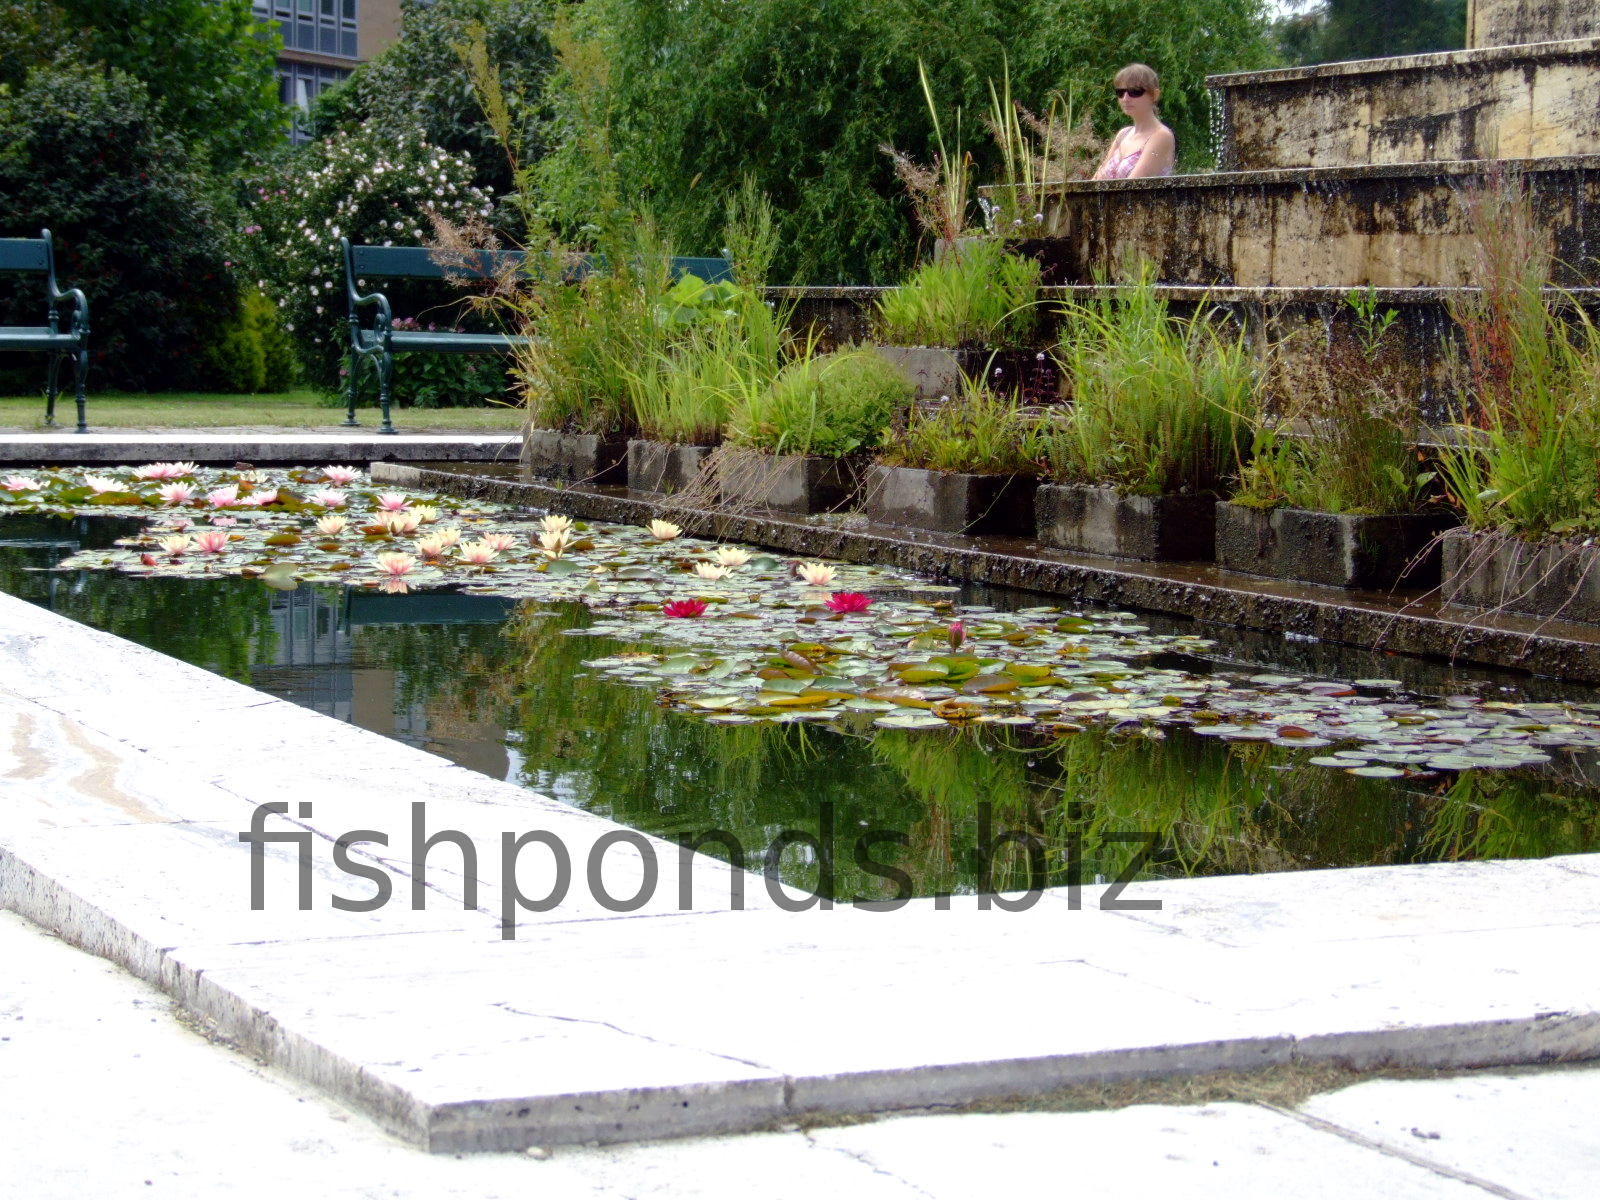 Fish pond designs pictures - Fish Pond Resized Image 1